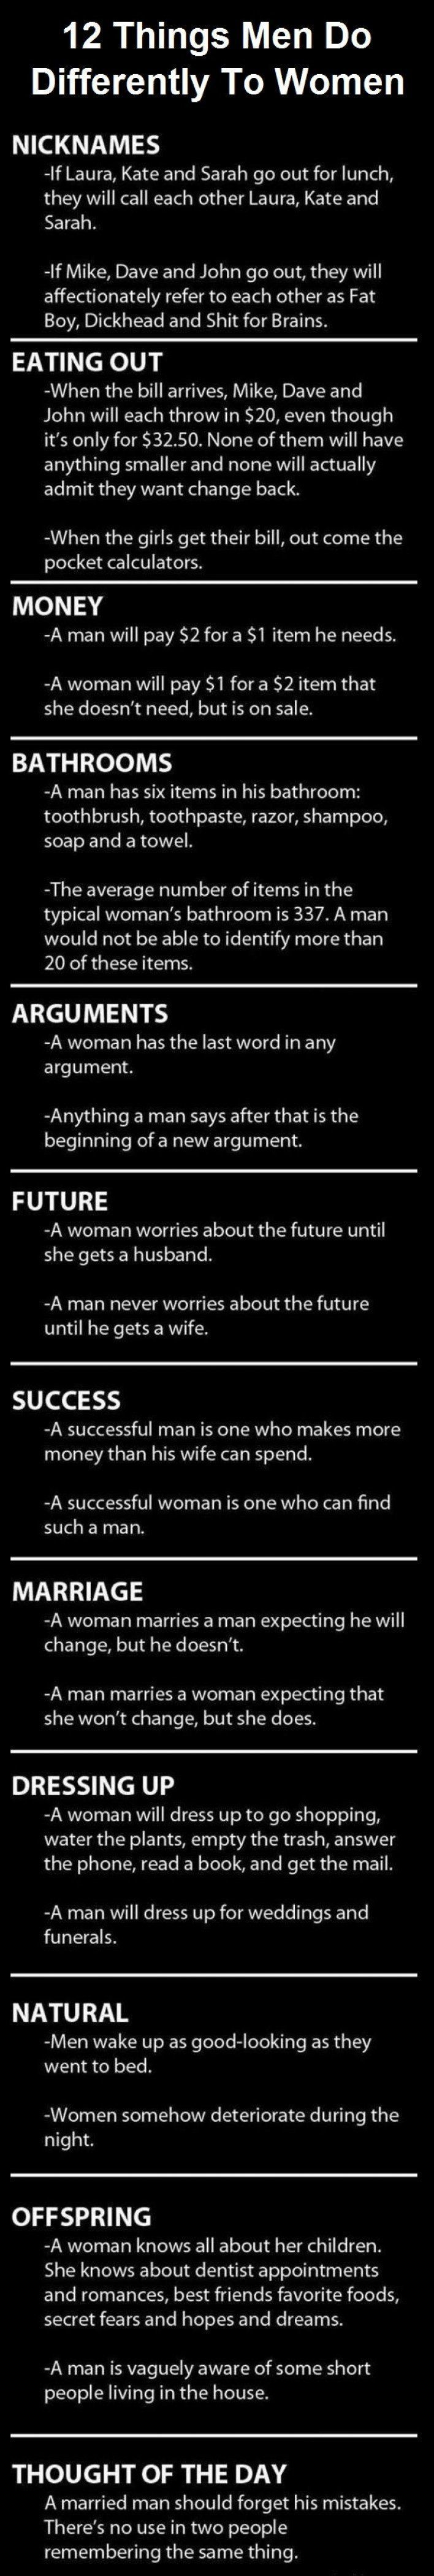 12 Things Men Do Differently To Women...THIS WILL HAVE YOU LAUGHING IN STITCHES!